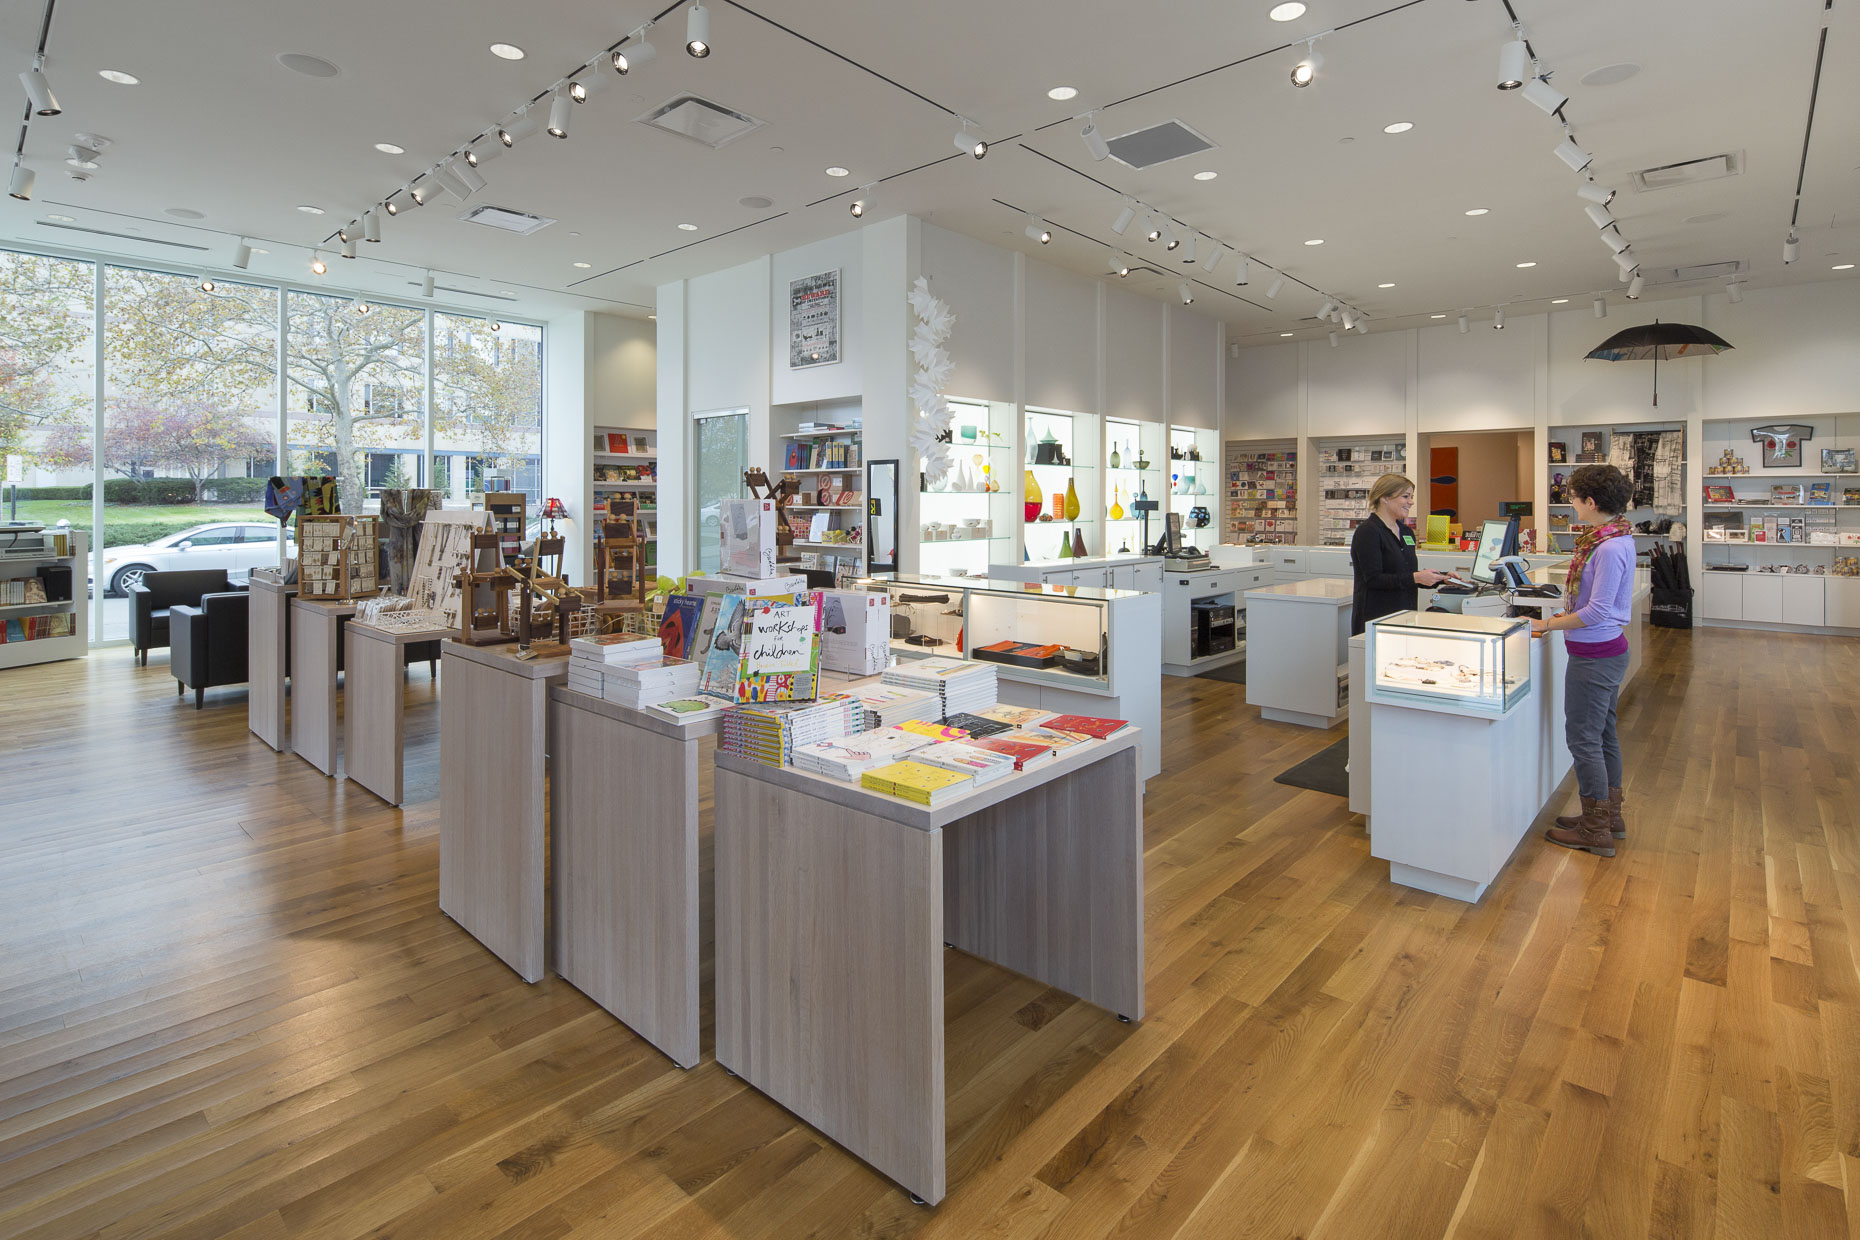 CMoA Gift Shop in the Margaret M Walter Wing by DesignGroup photographed by Brad Feinknopf based in Columbus, Ohio